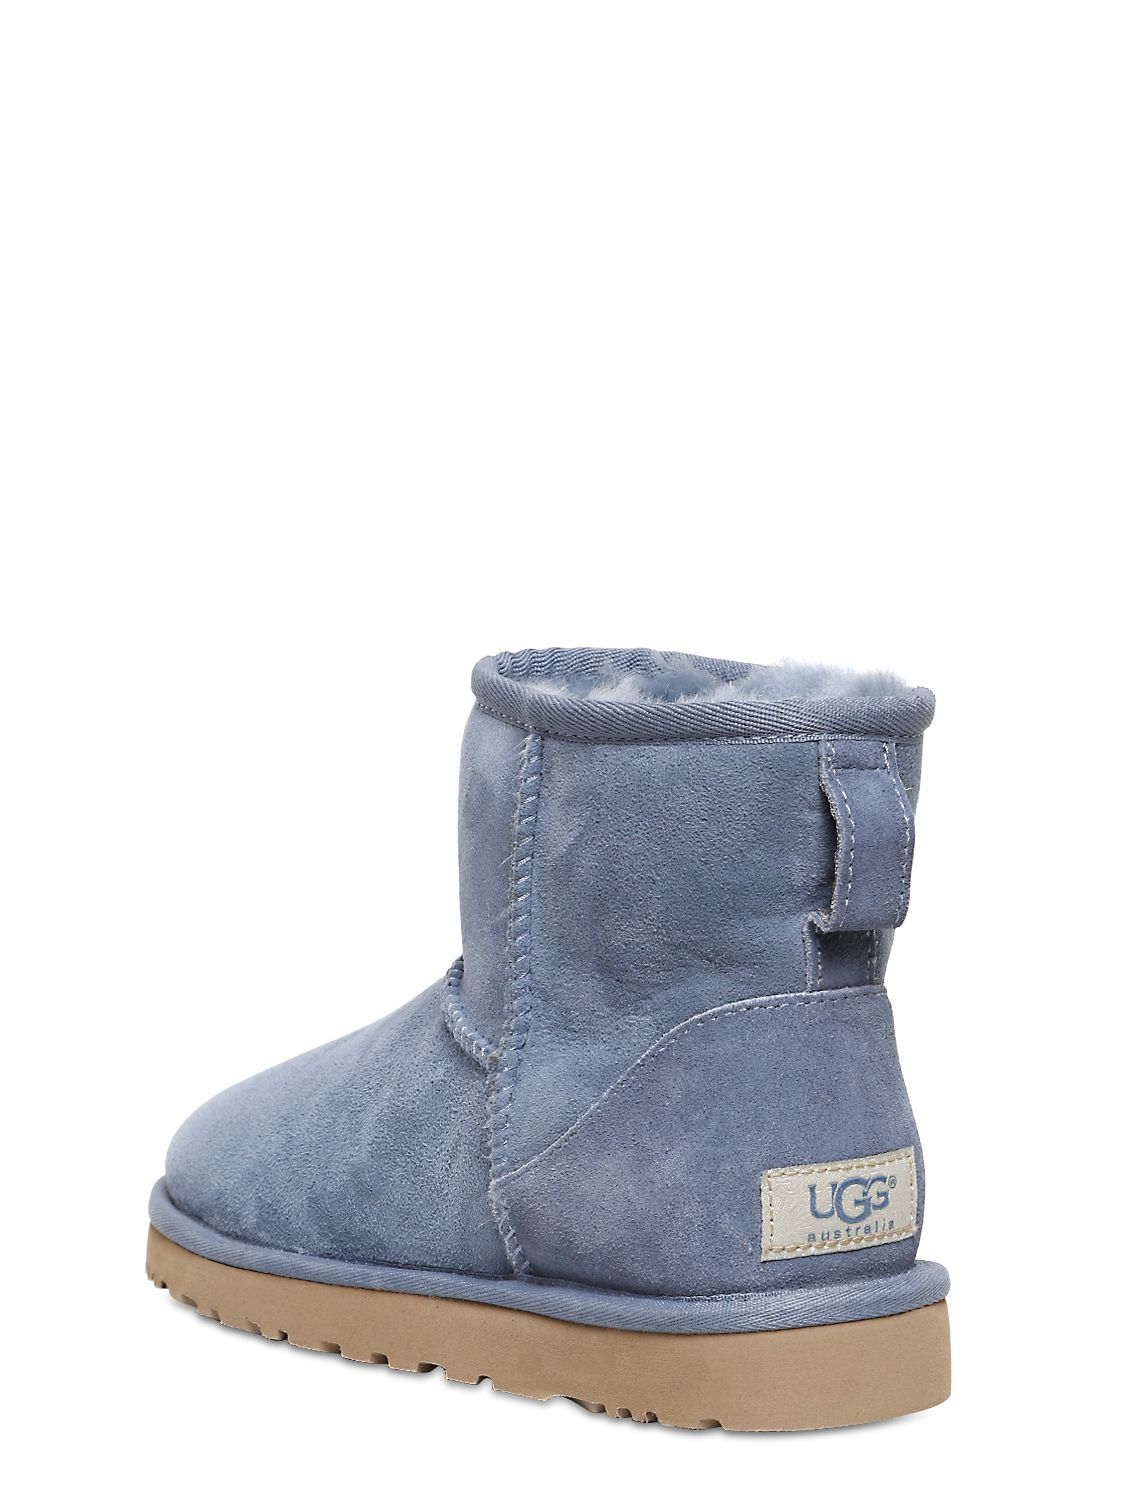 dolphin blue uggs polyvore